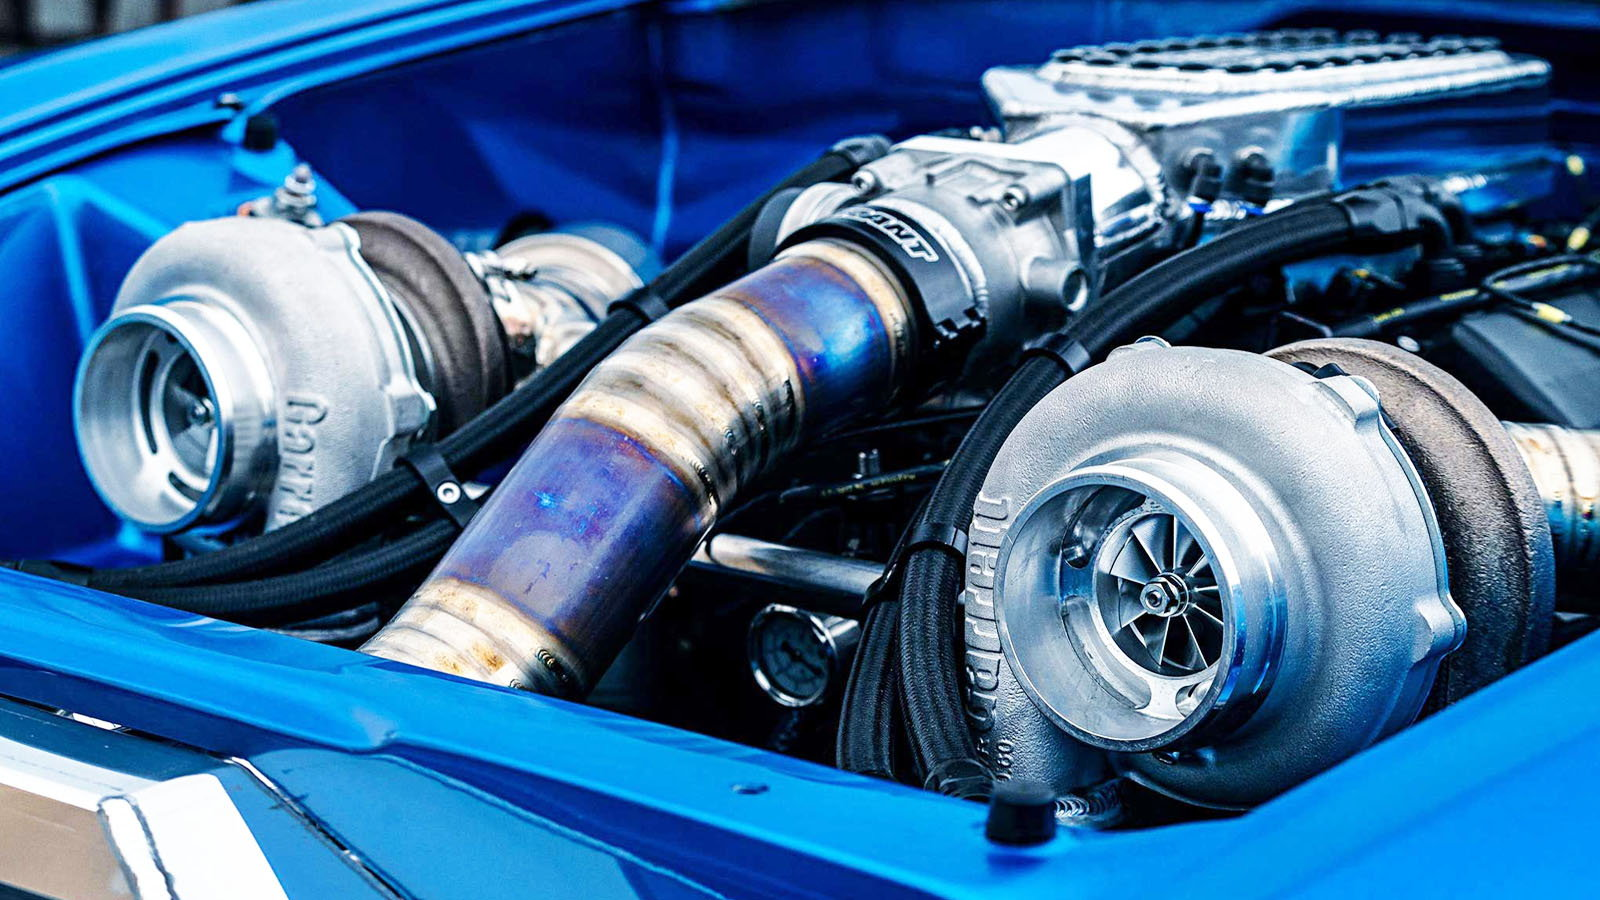 Twin Turbo J Swapped AP2 is Not to Be Messed With